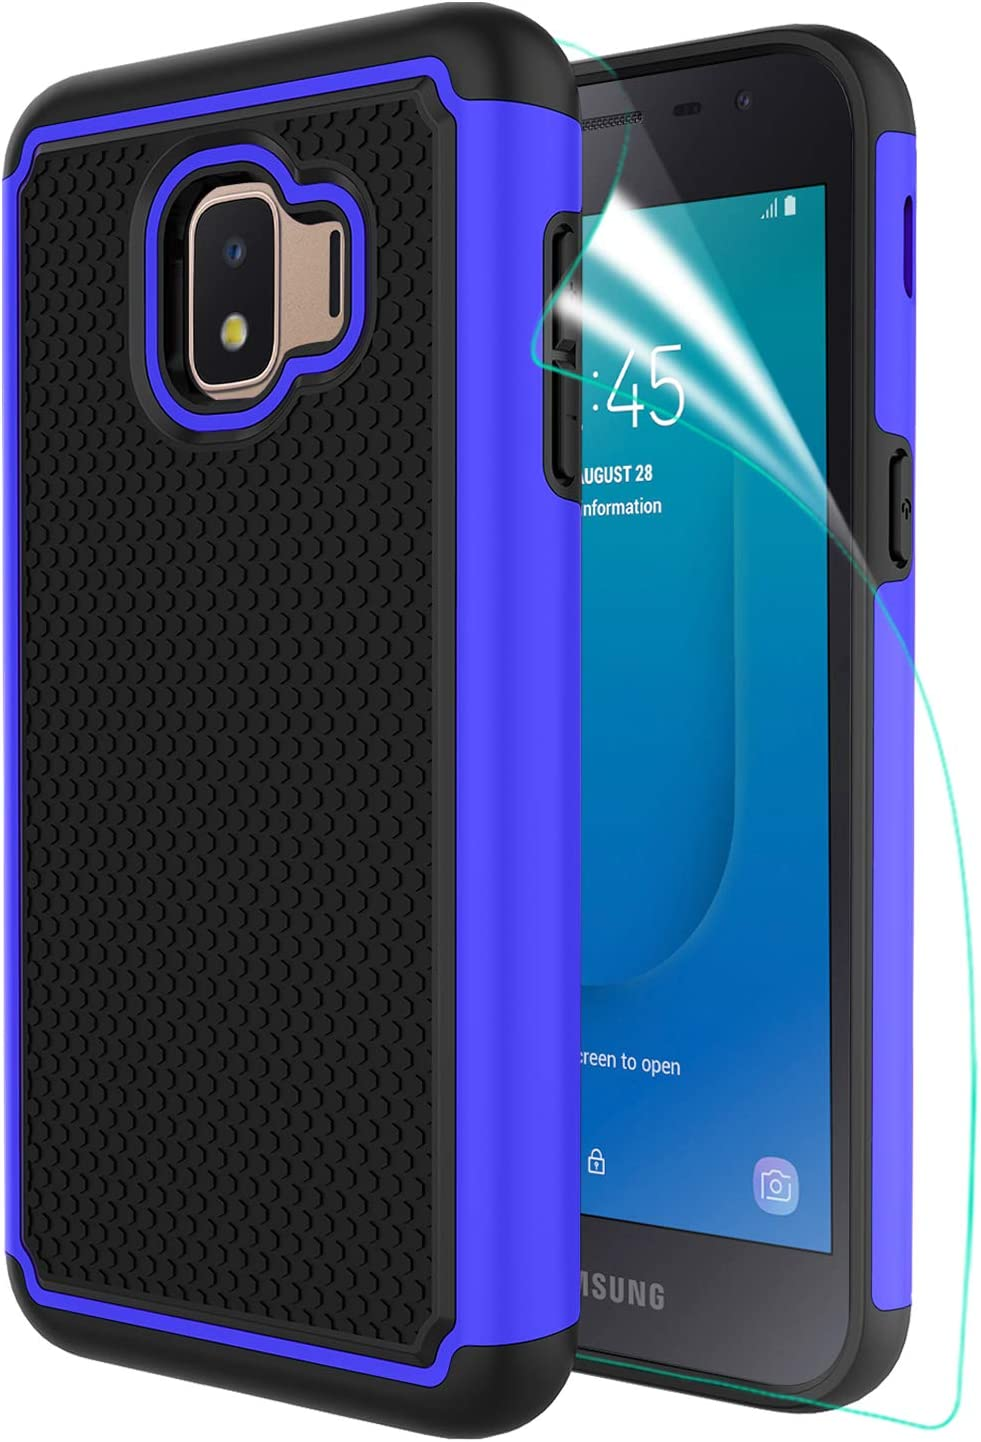 Innge for Samsung Galaxy J2 Case,J2 Core Case,Galaxy J2 Dash/Galaxy J2 Pure/J2 Shine/J260 Case with Screen Protector,[Shockproof][Anti-Scratch] Dual Layer Armor Defender Protective Case Cover,Blue